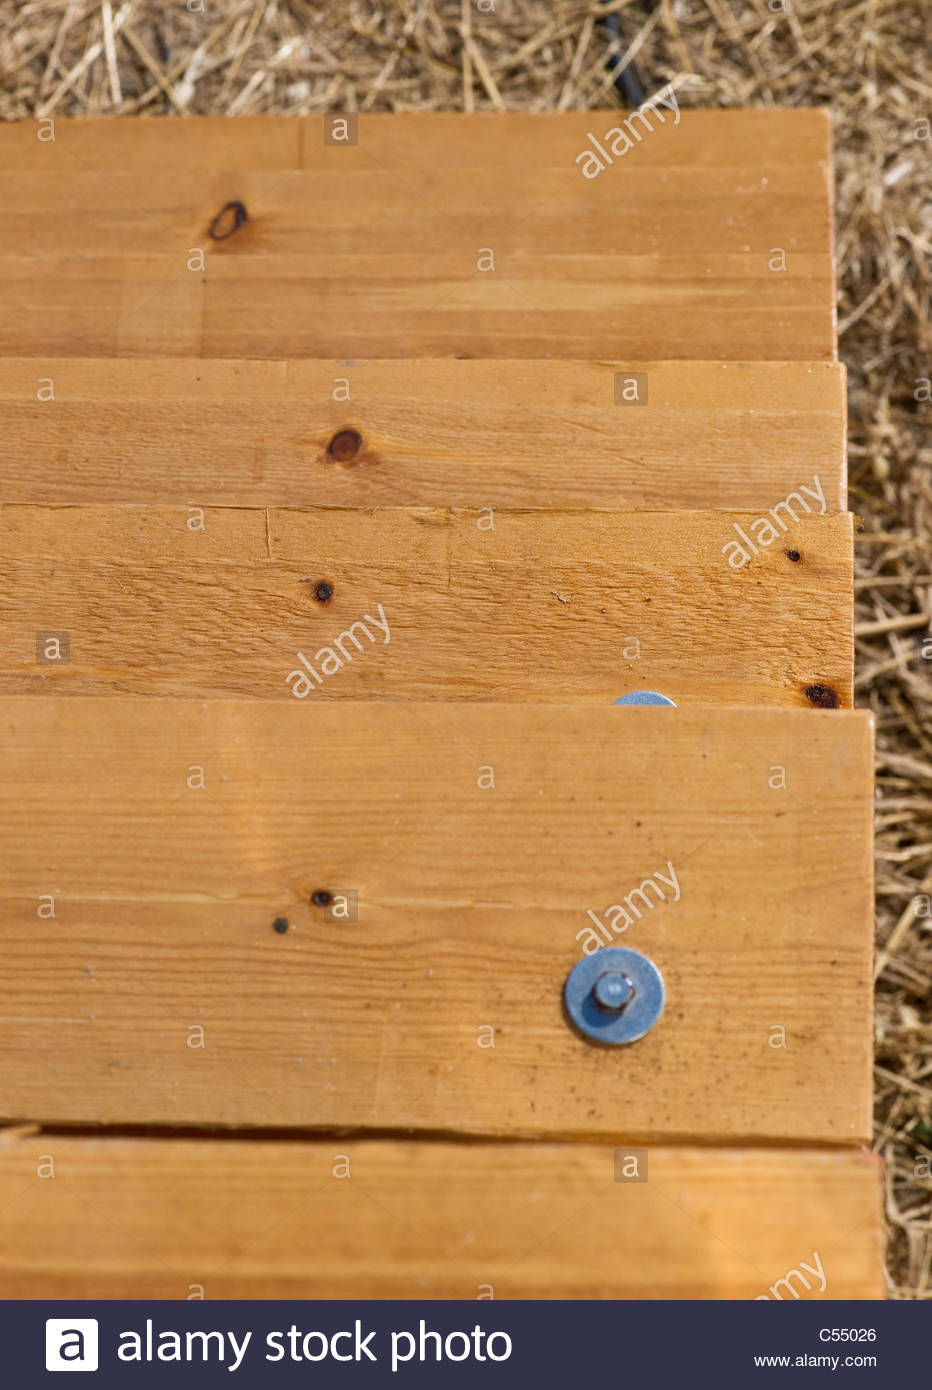 Wooden steps - Stock Image